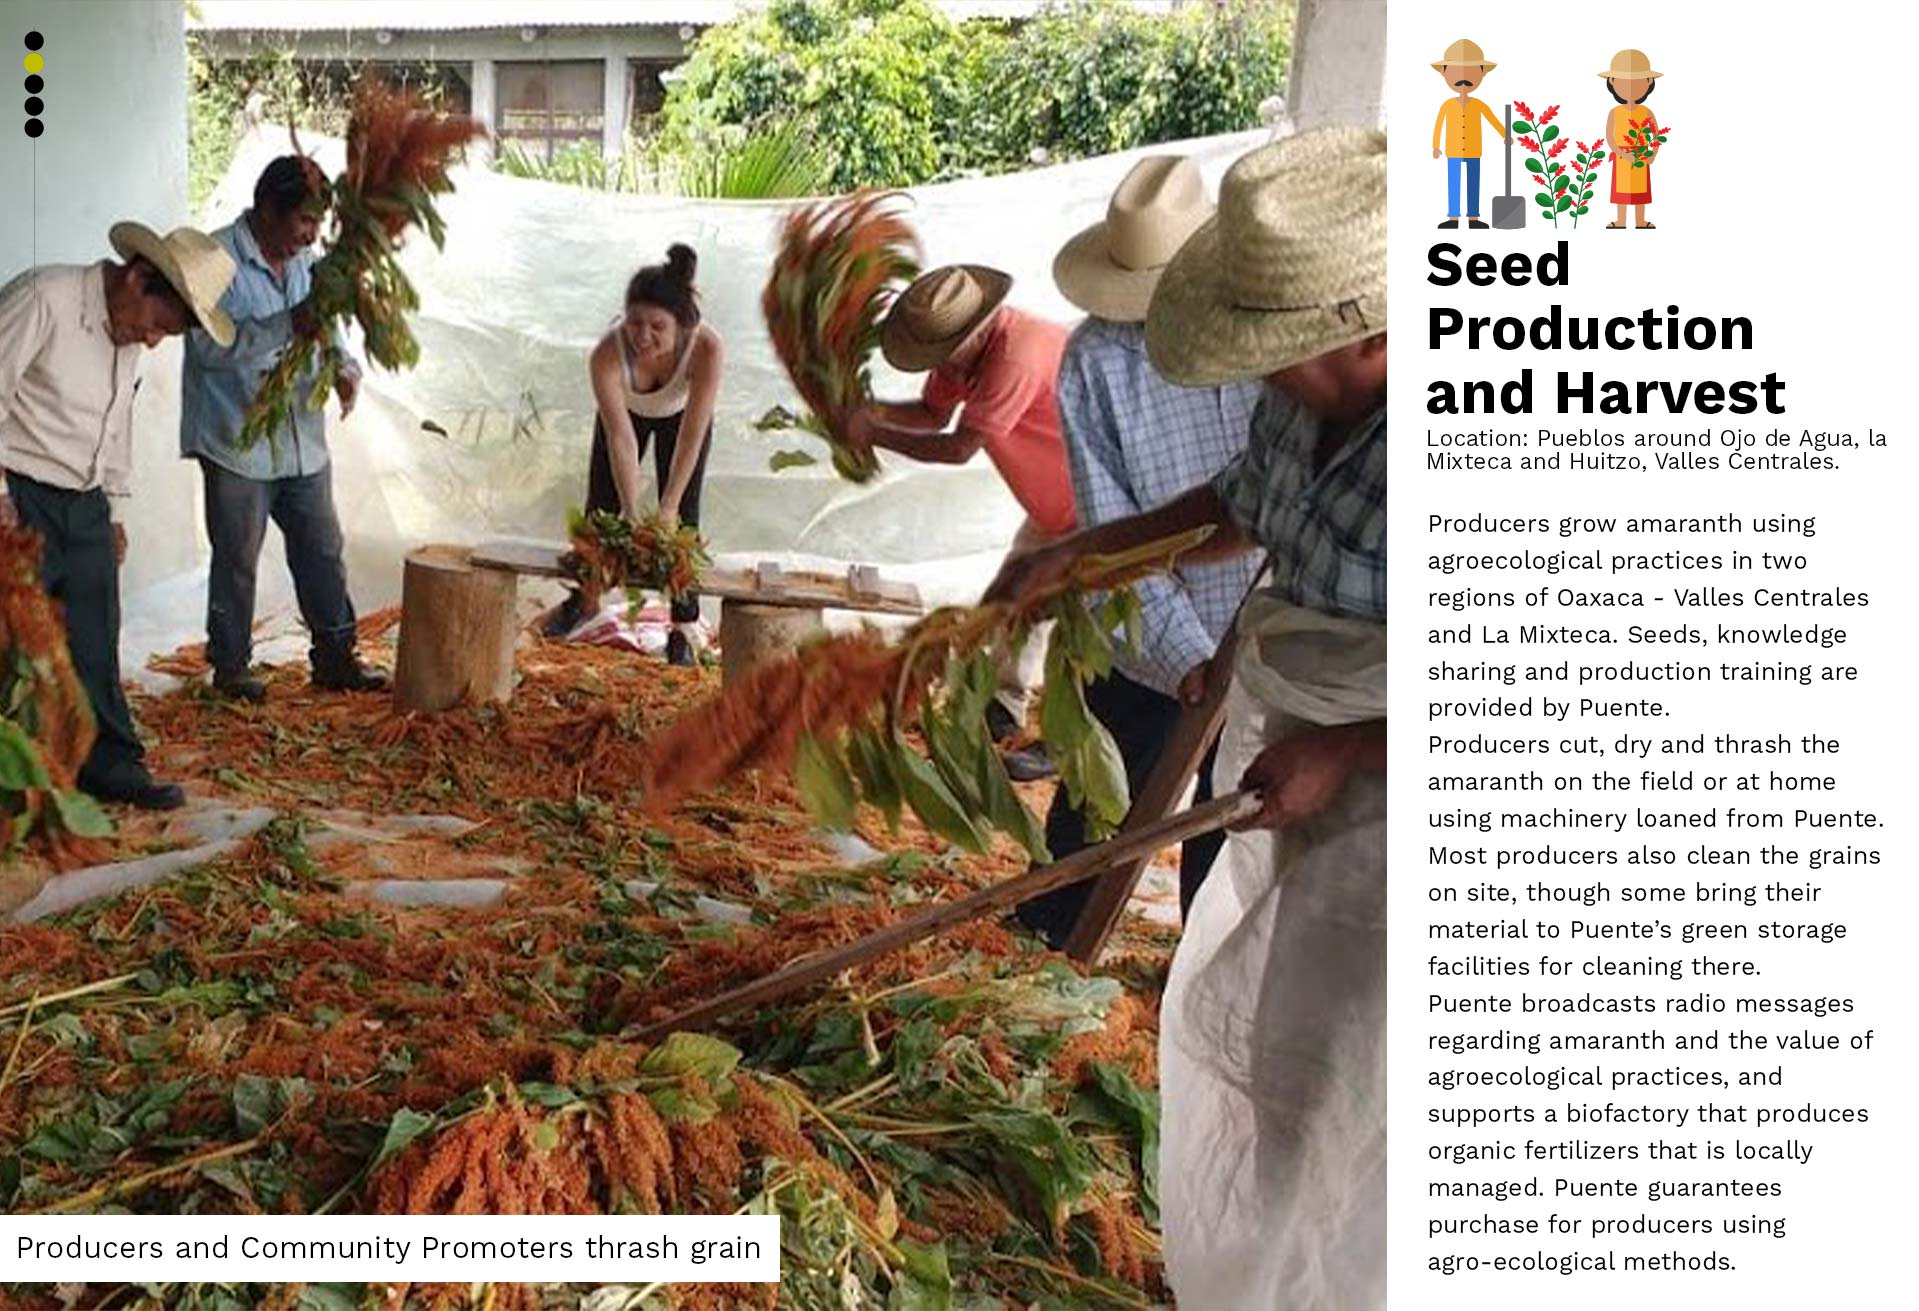 02-Seed Production and Harvest